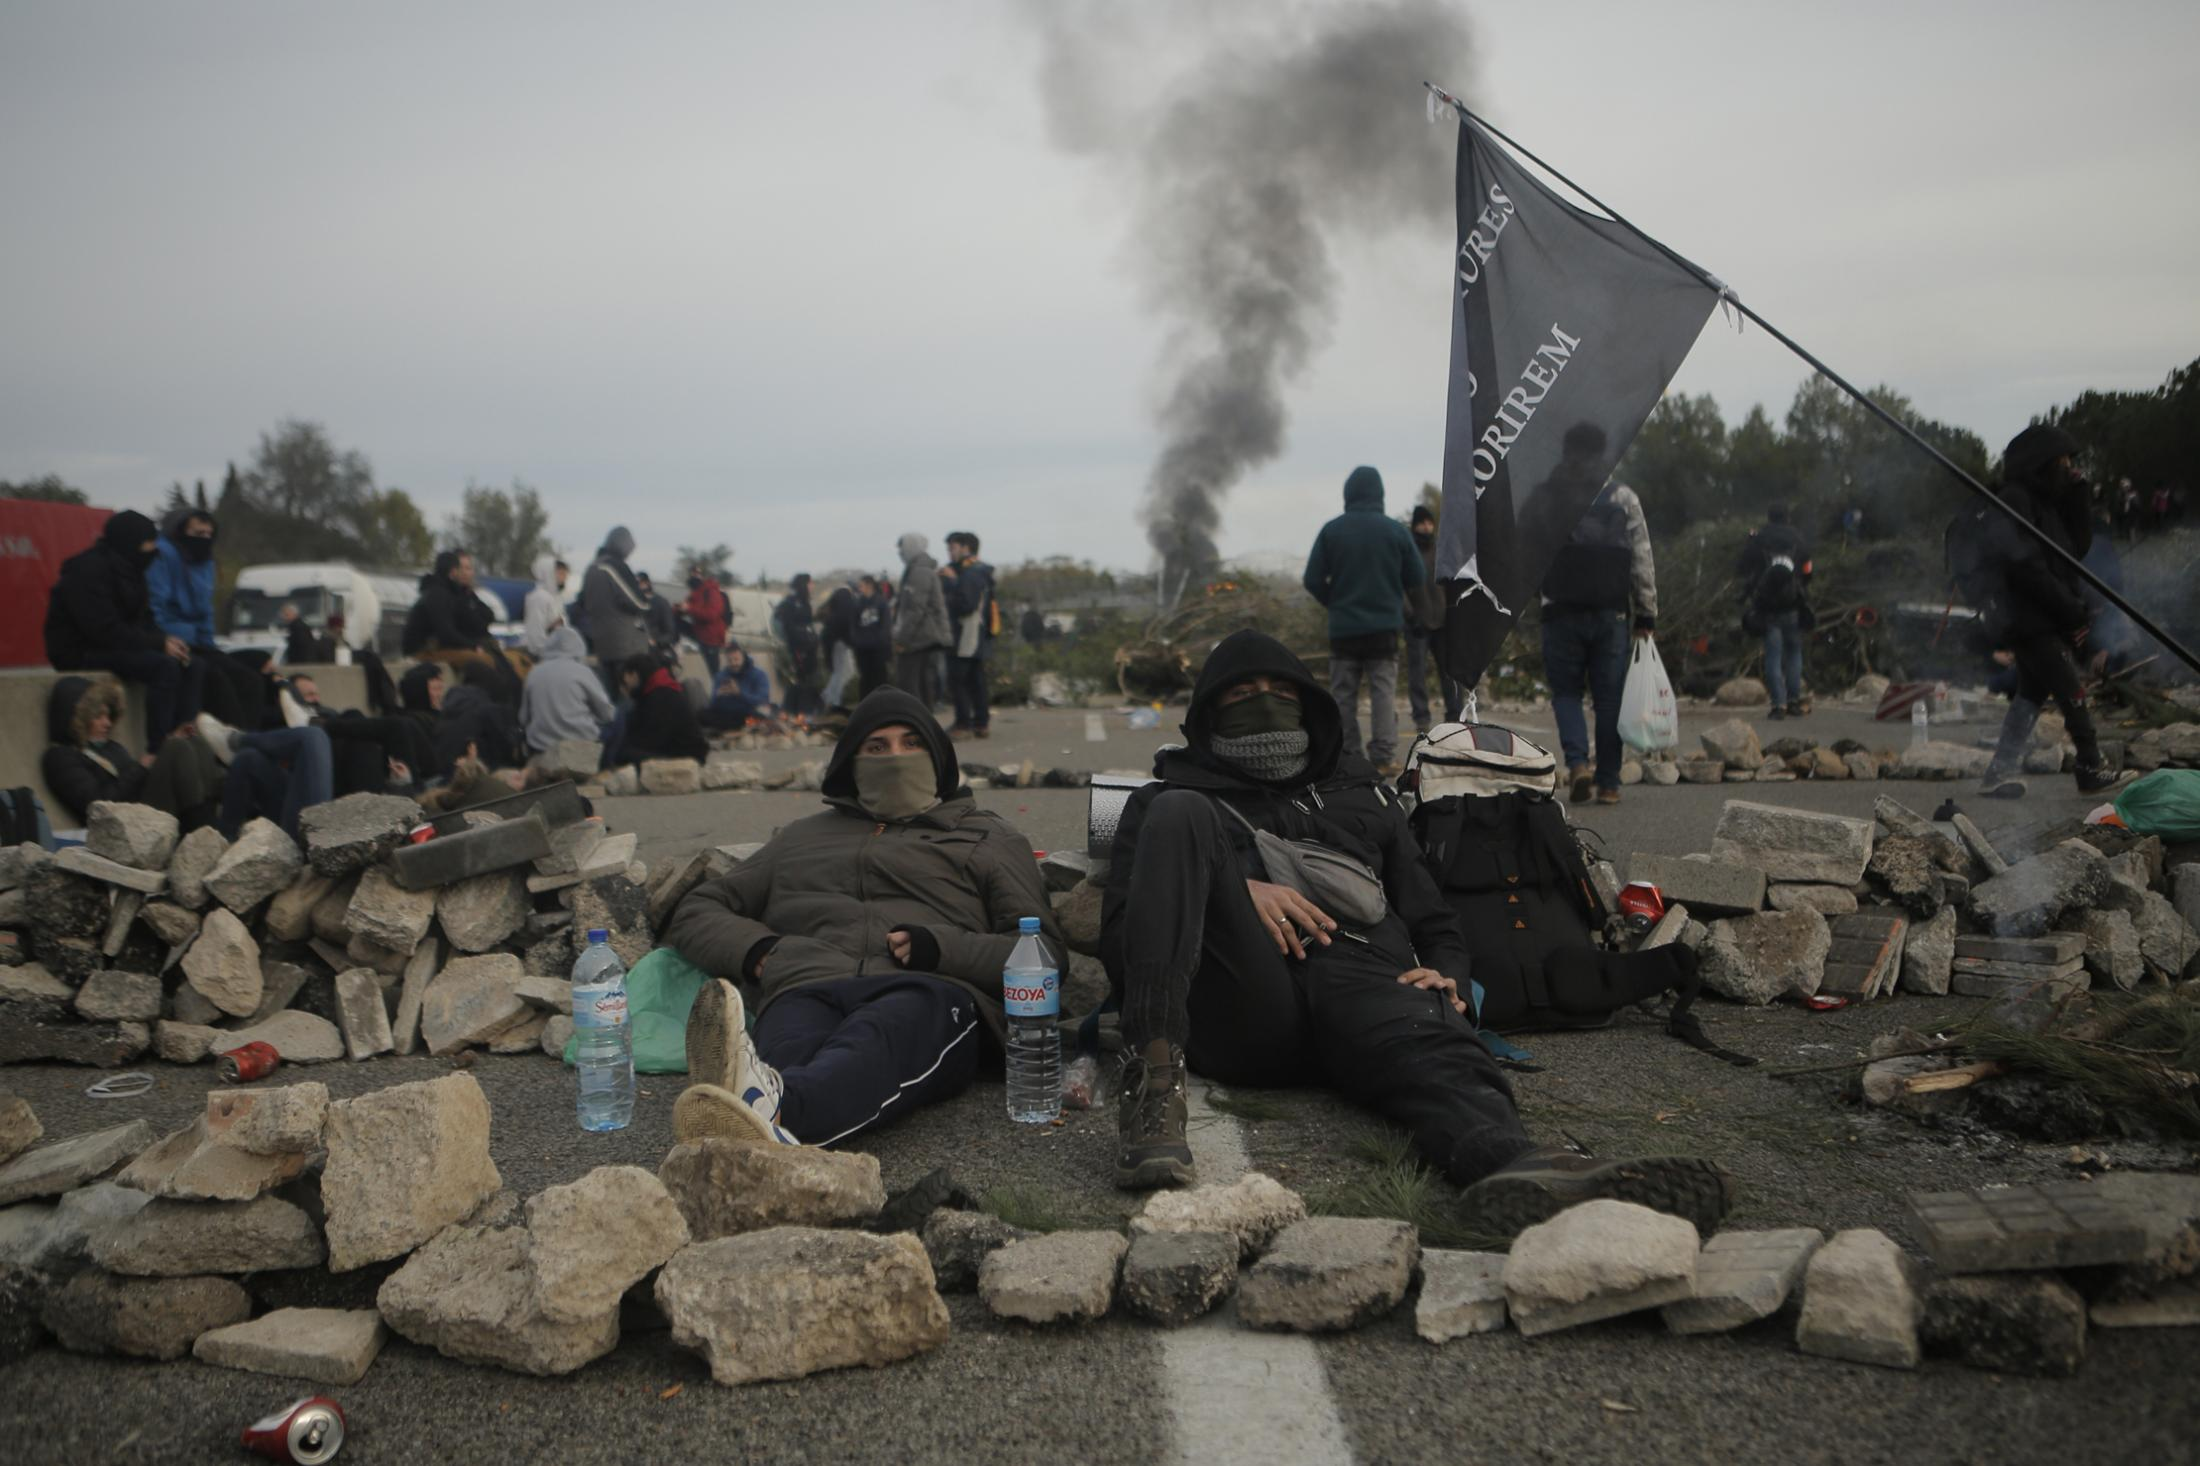 Catalan pro-independence demonstrators spend the night blocking a major highway near Girona, Spain, Wednesday, Nov.13, 2019. French police detained 18 pro-Catalan independence protesters Tuesday and used pepper spray and batons to push back demonstrators who blocked a major highway border crossing between France and Spain for more than 24 hours. (AP Photo/Joan Mateu)